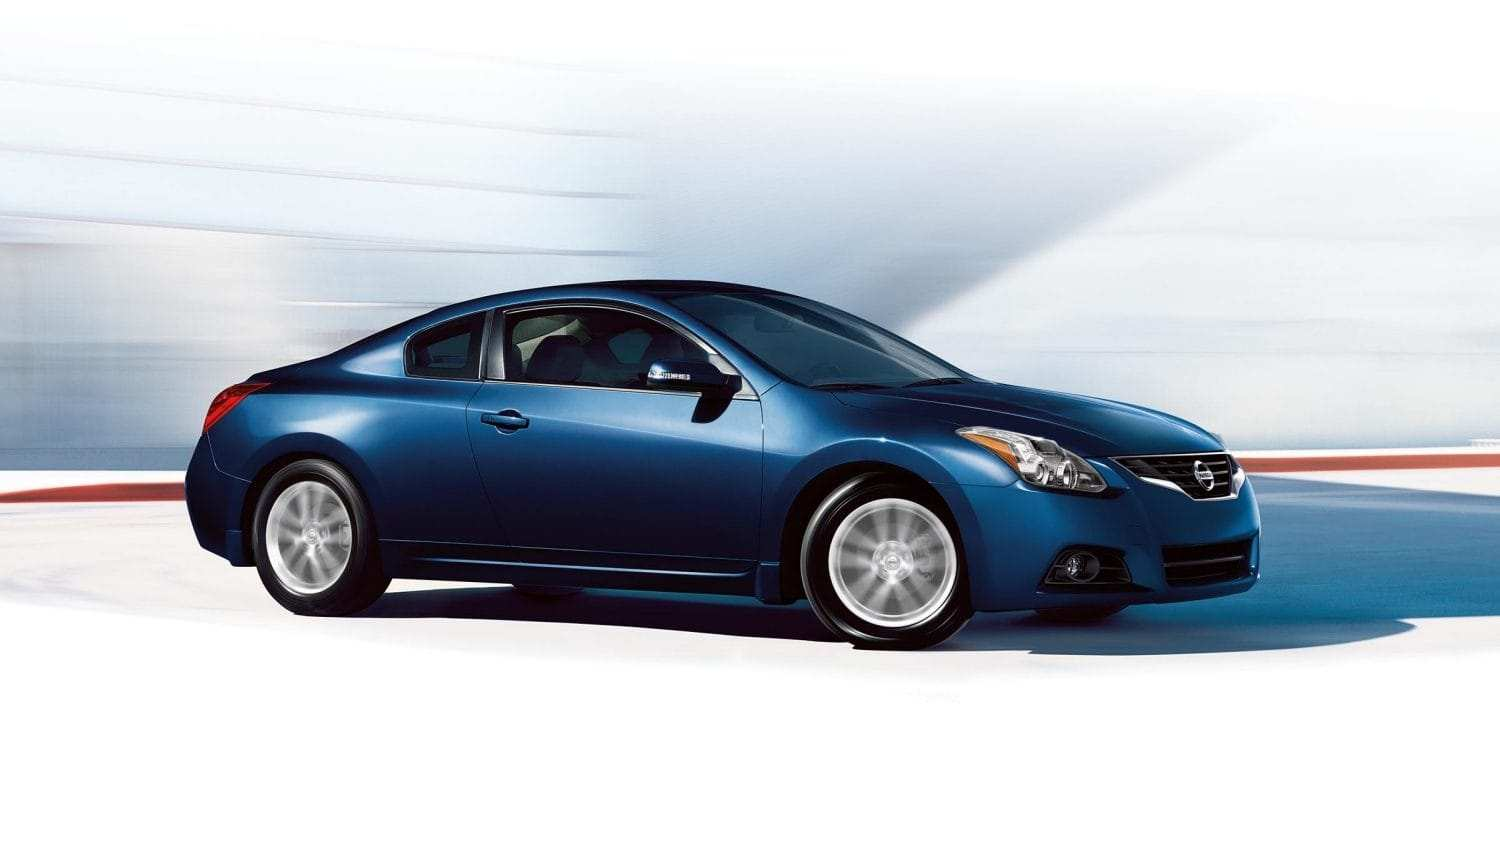 48 New 2020 Nissan Altima Coupe Prices with 2020 Nissan Altima Coupe